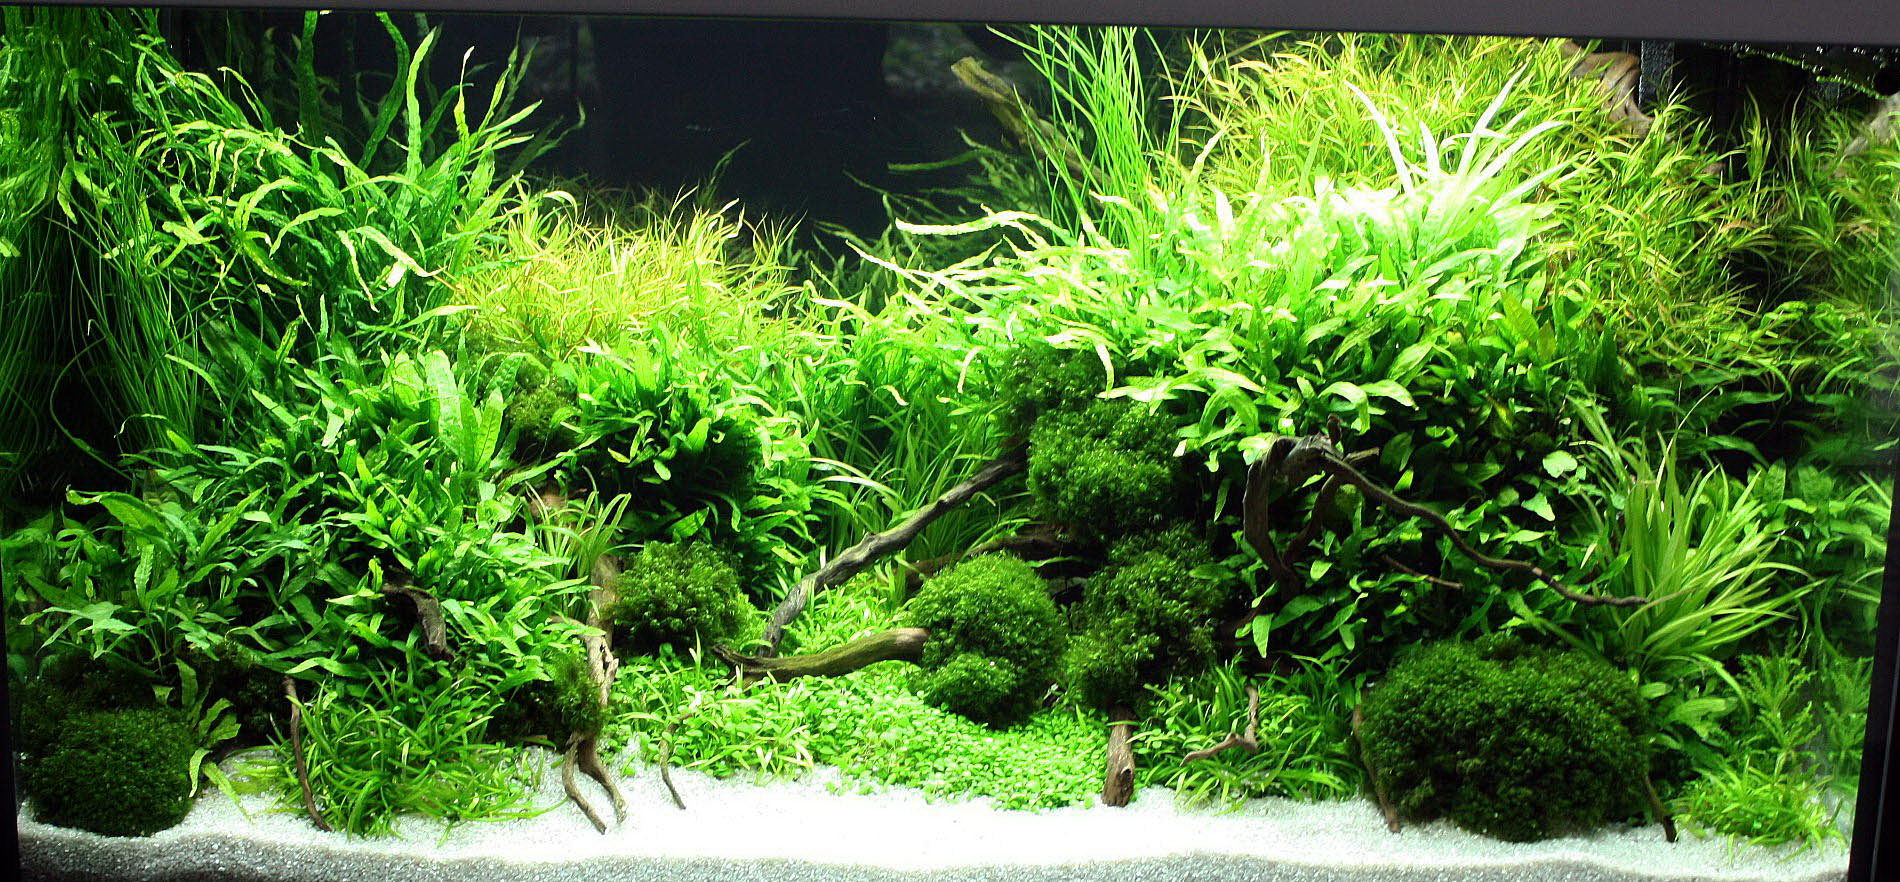 Marcel dykierek and aquascaping aqua rebell for Plante aquarium